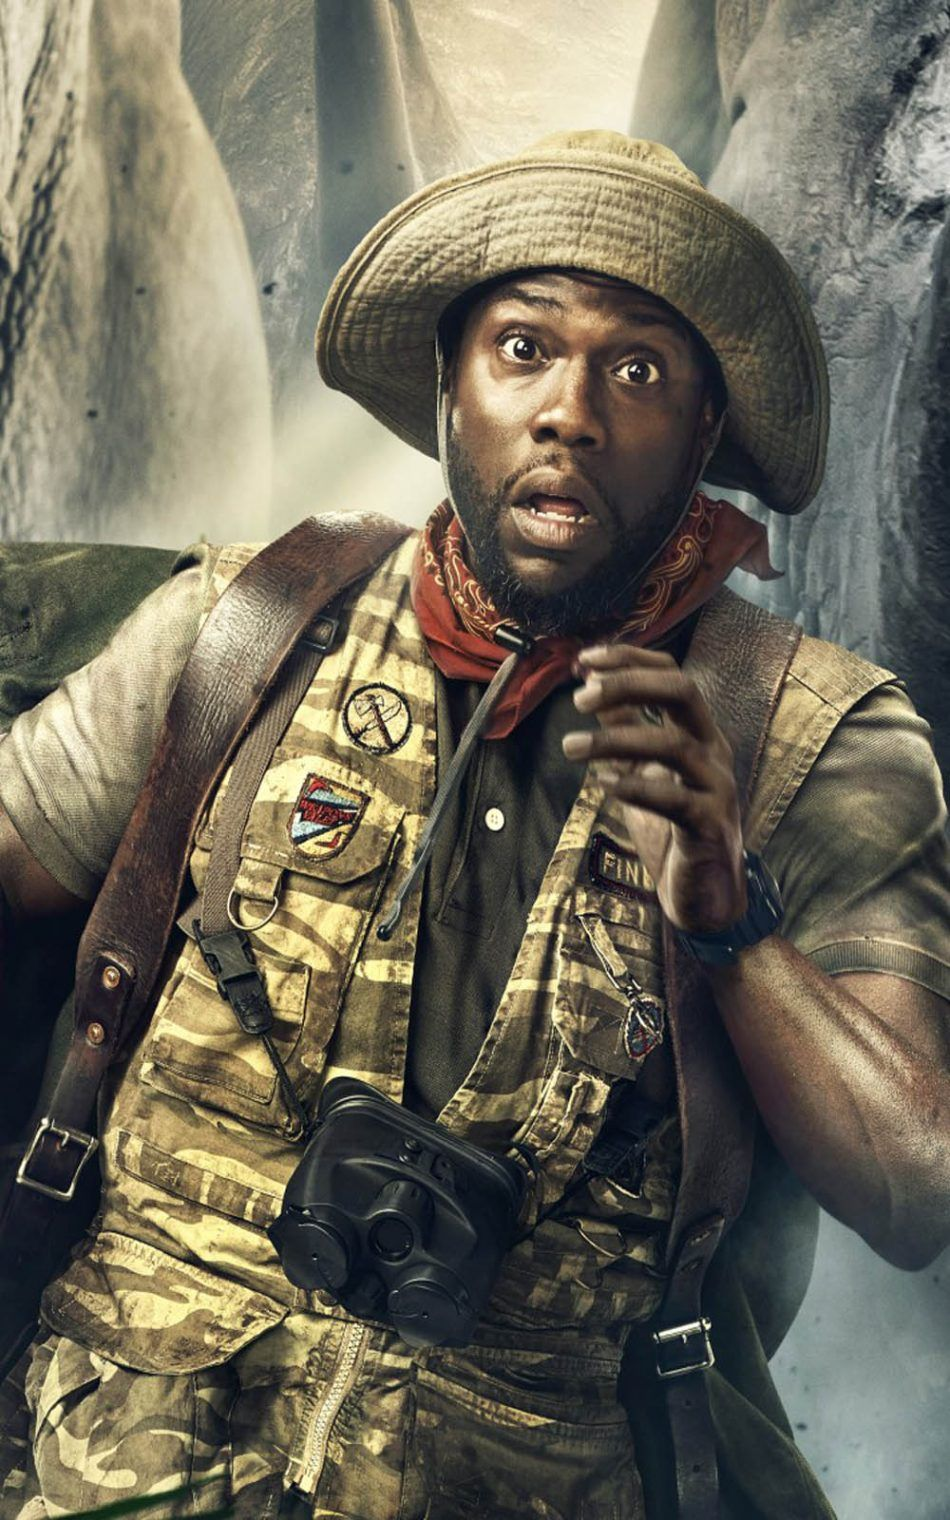 Kevin Hart In Jumanji To The Jungle Kevin hart